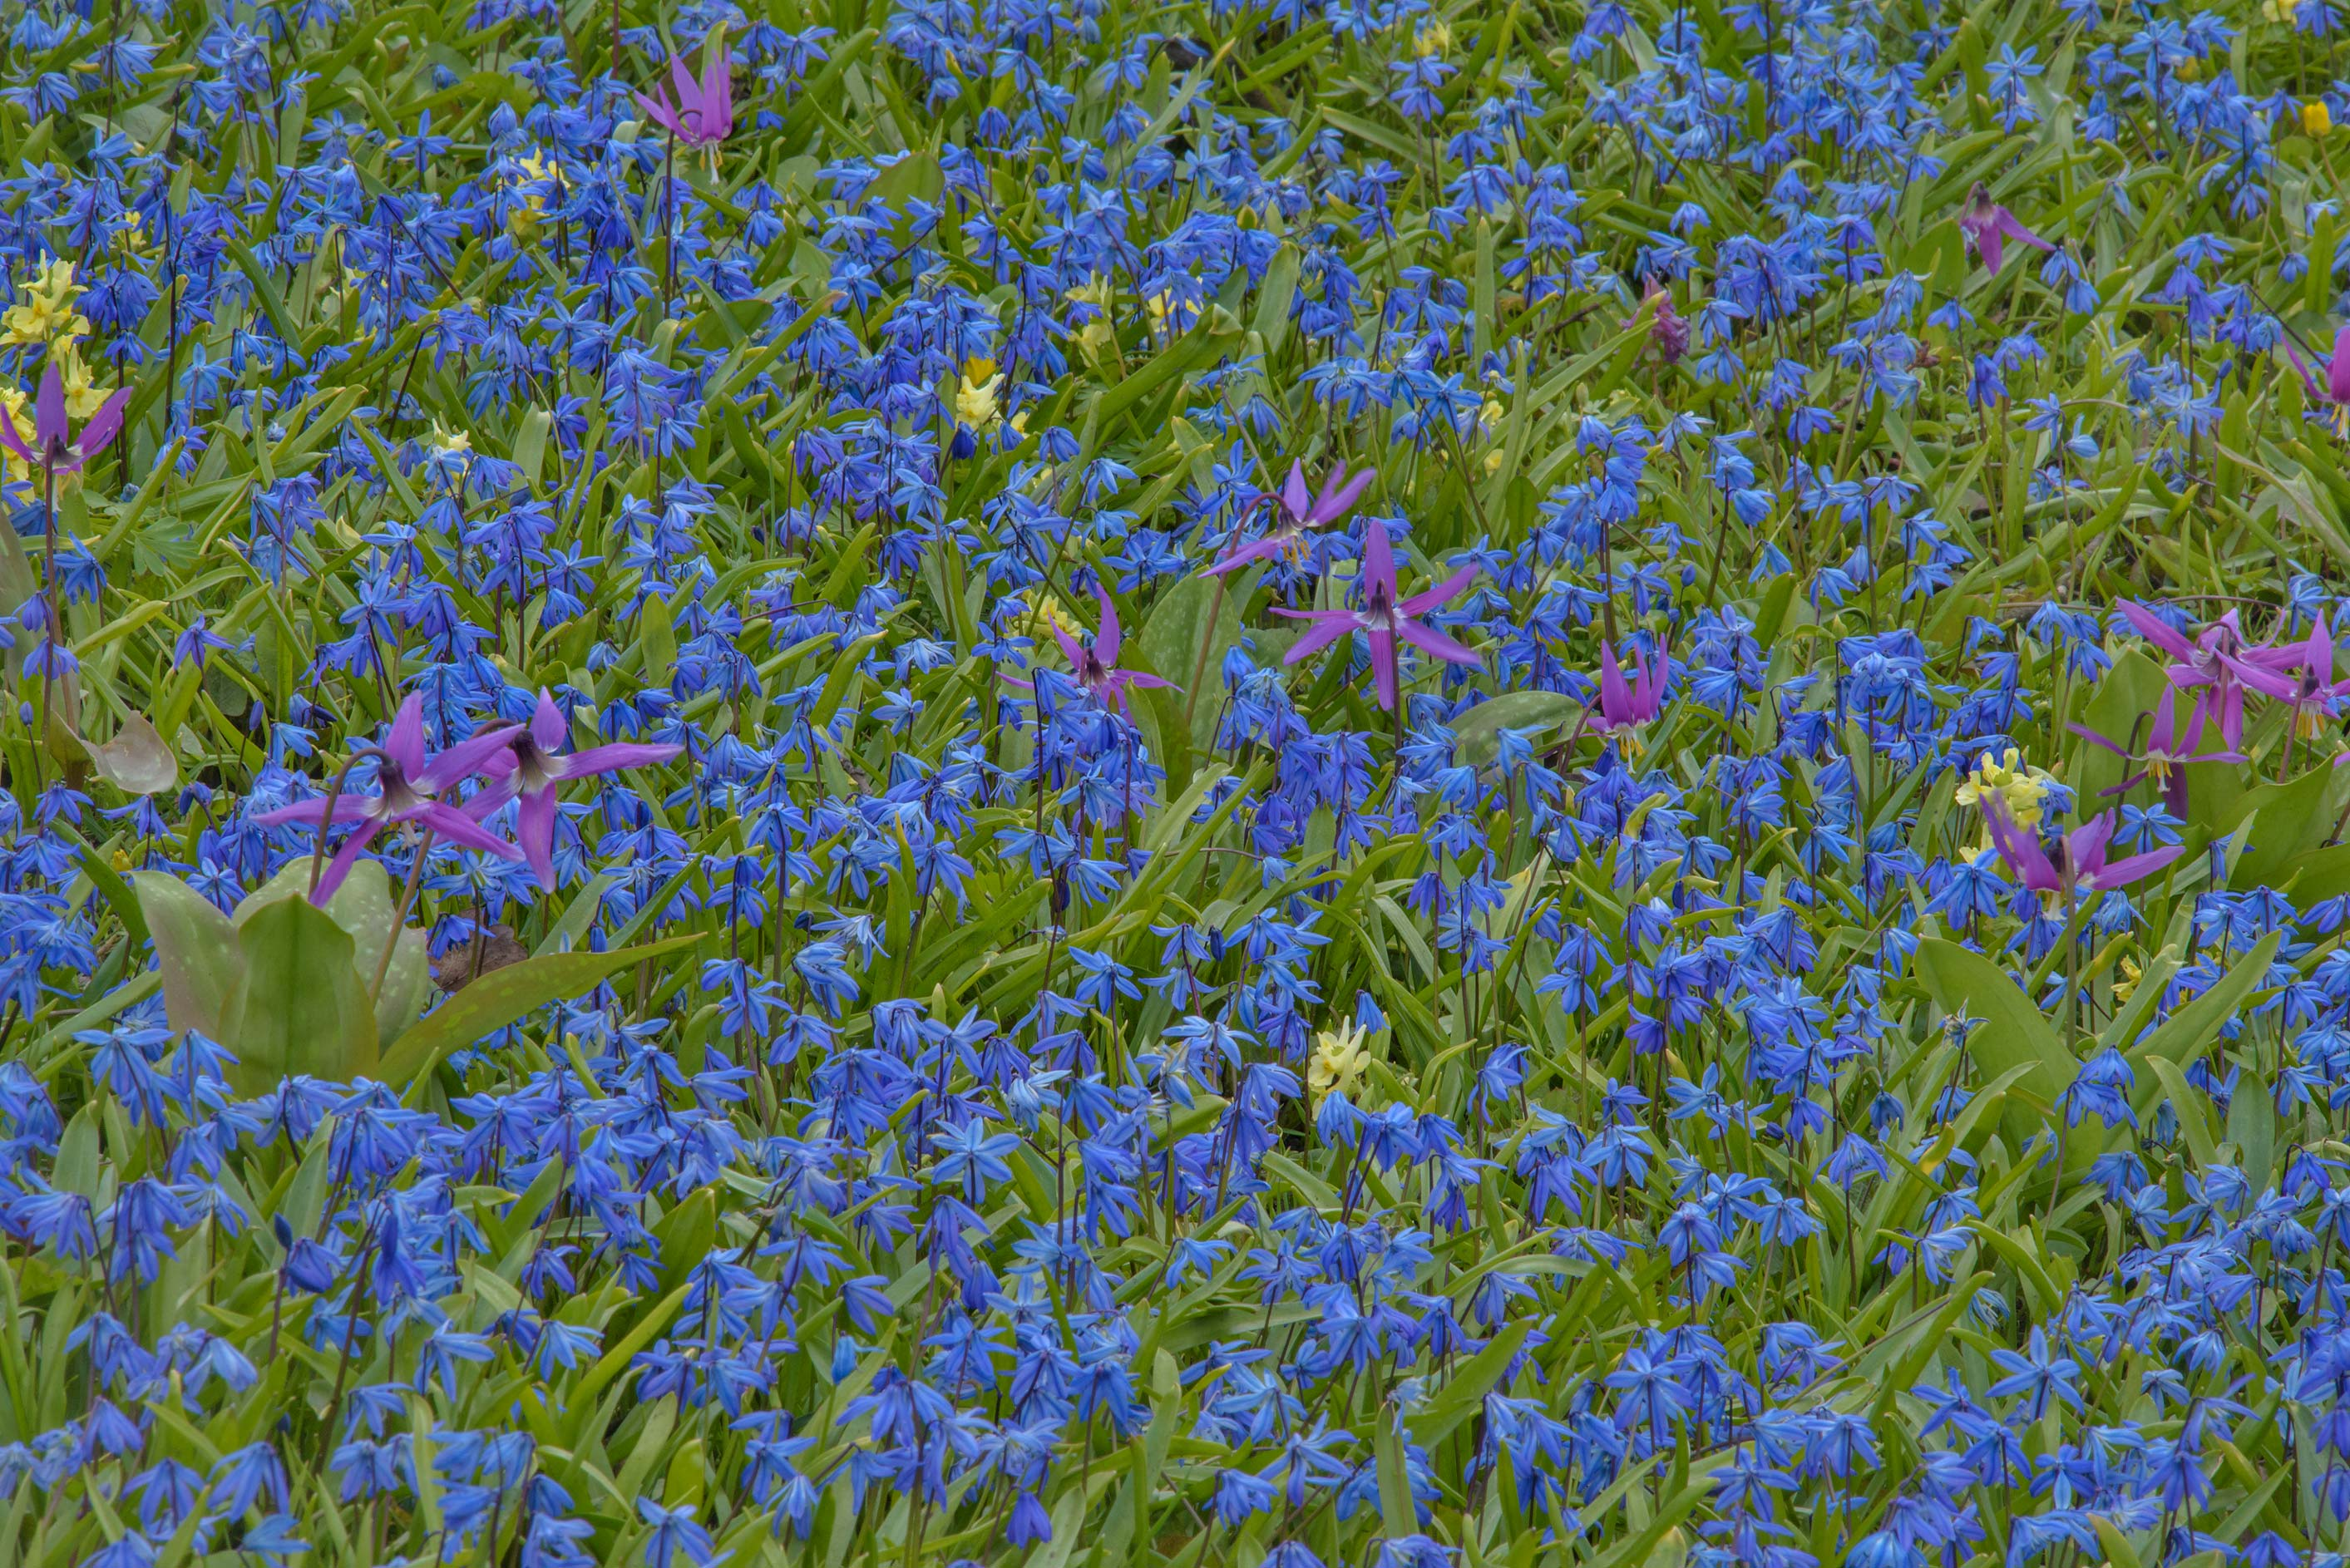 photo 2033-26: carpet of flowers of lesser glory-of-the-snow